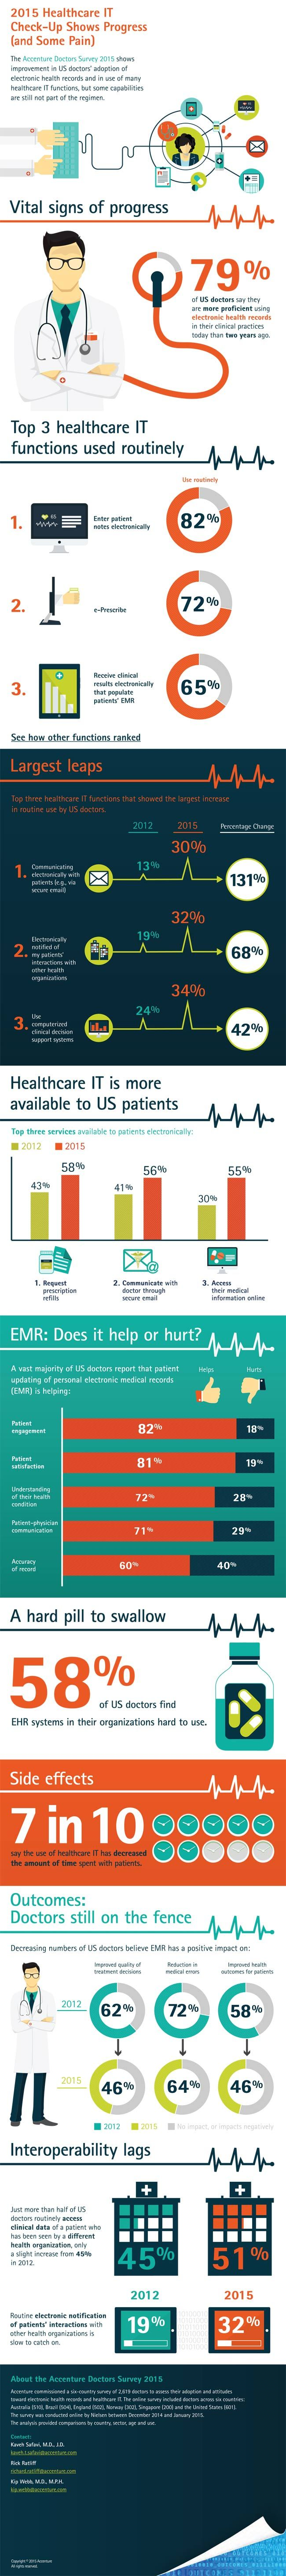 2015 Healthcare IT Check-Up Shows Progress (And Some Pain)